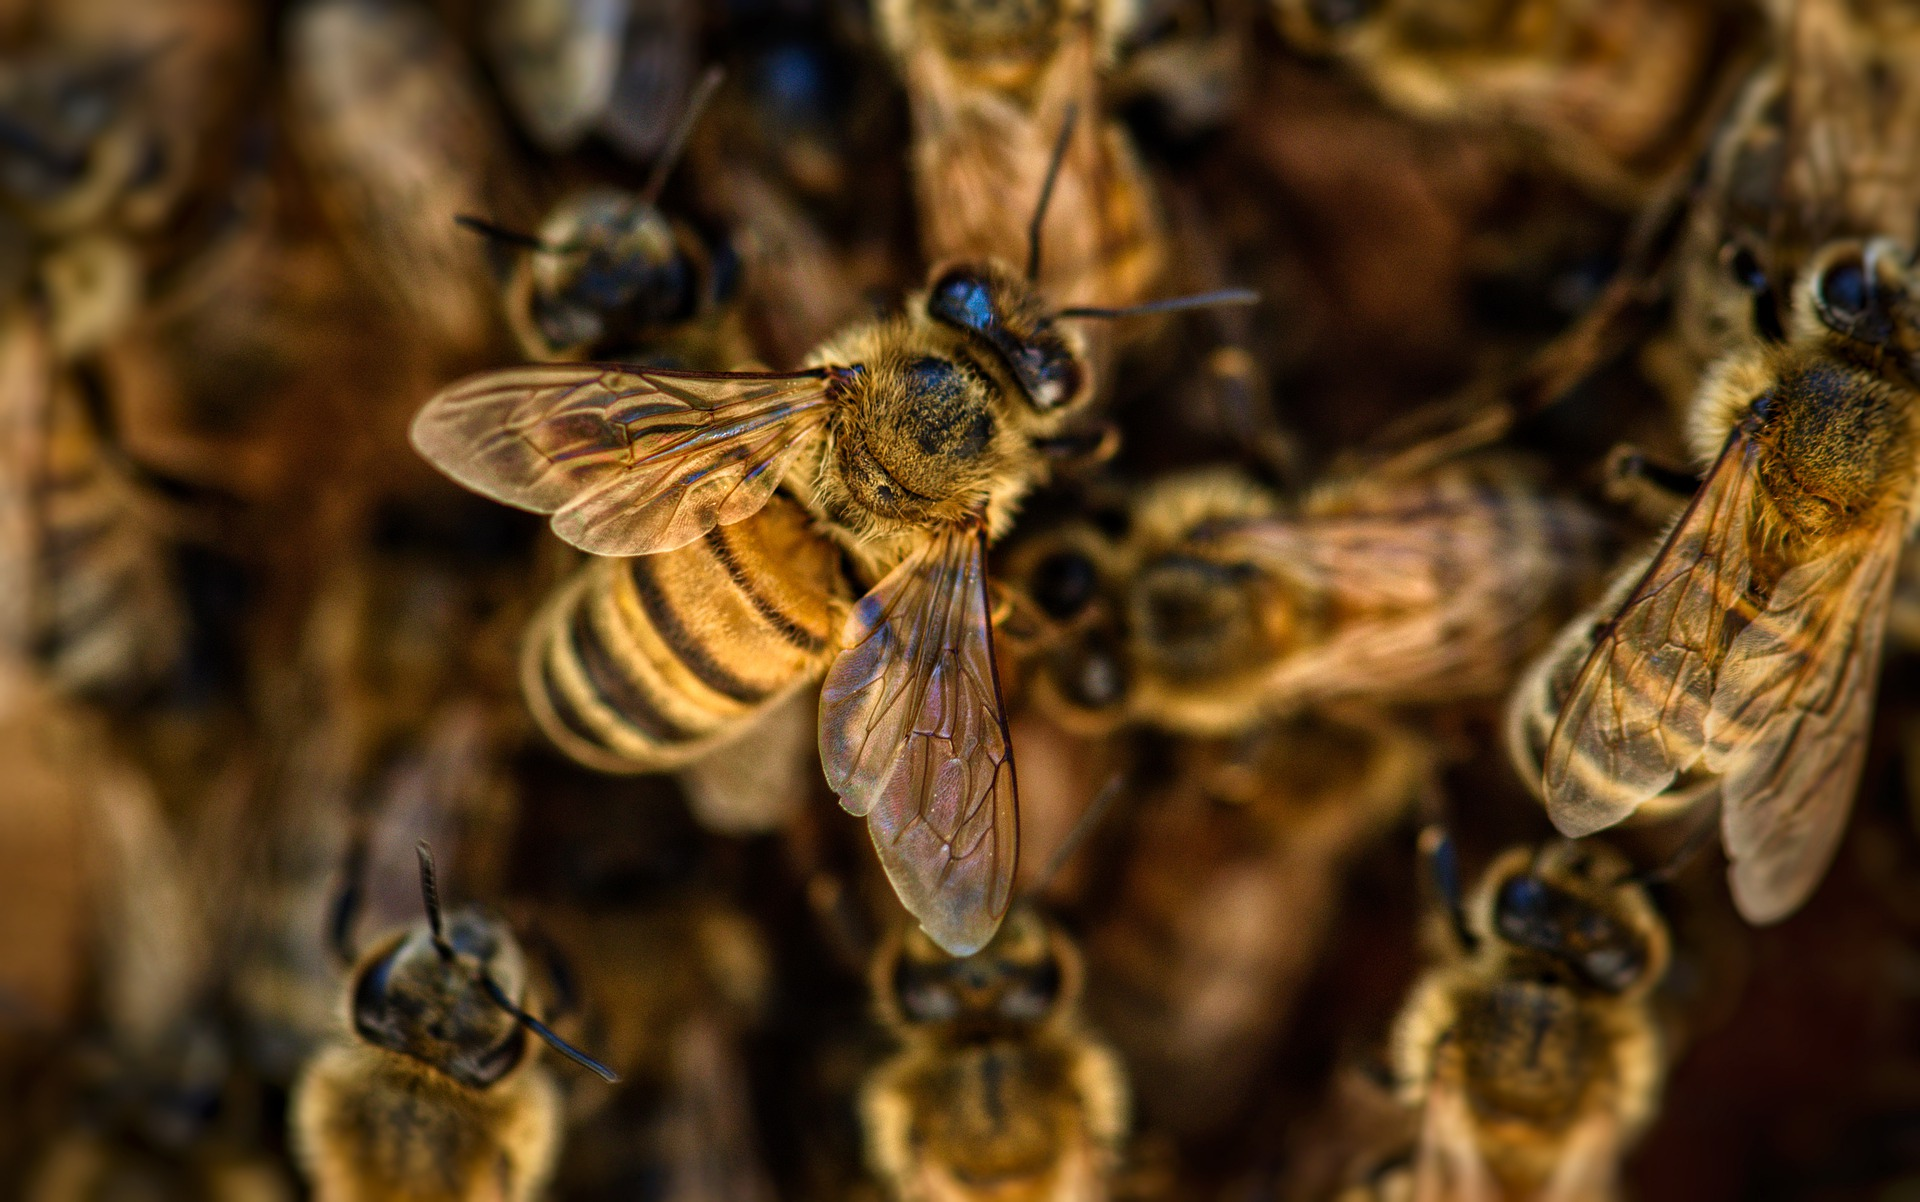 Trinity-Pest-Solutions-Bee-Control-Infestation